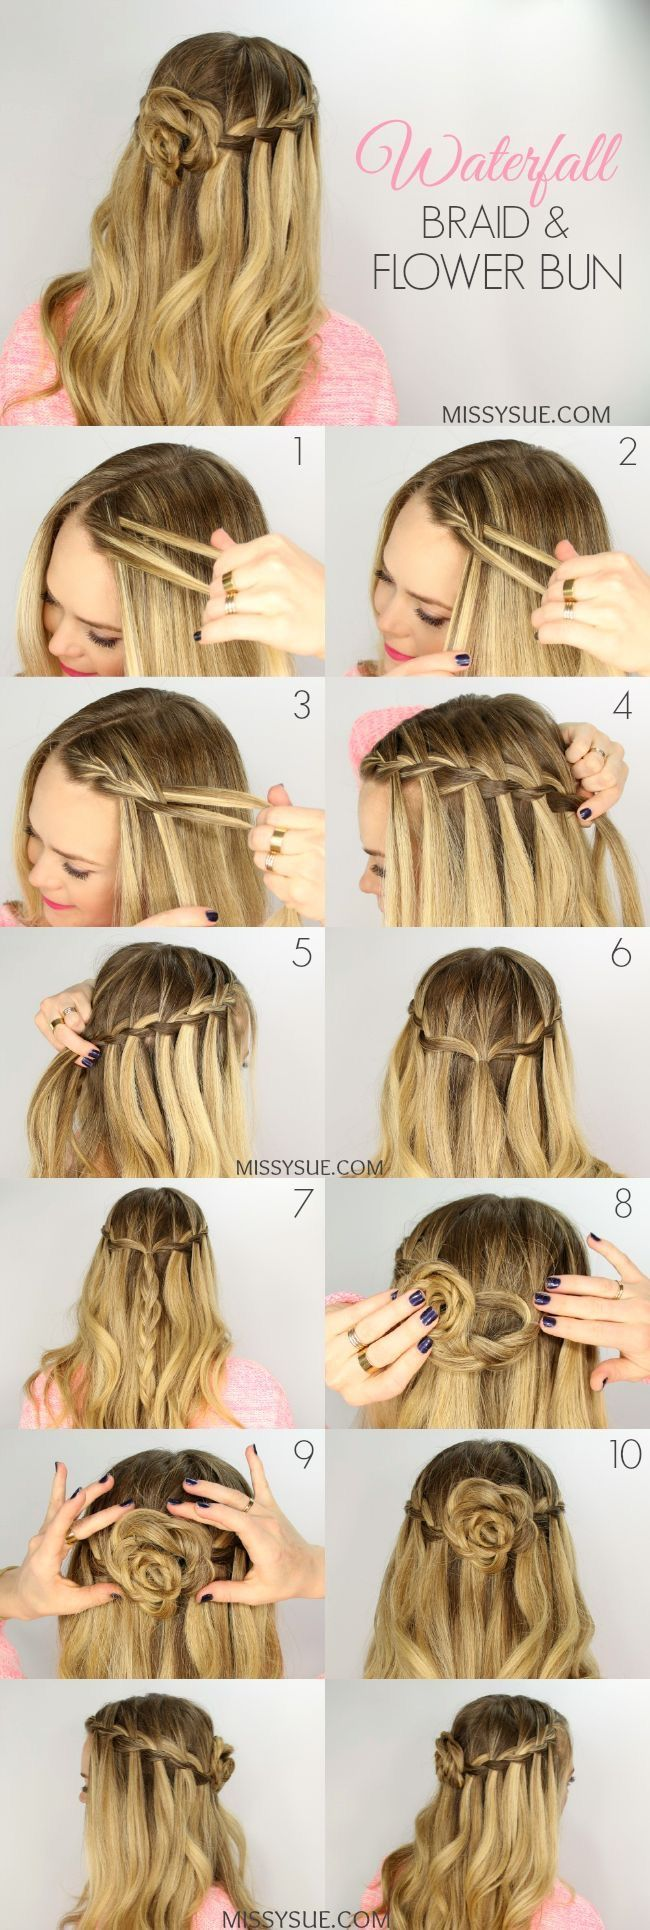 Waterfall cute flower braid